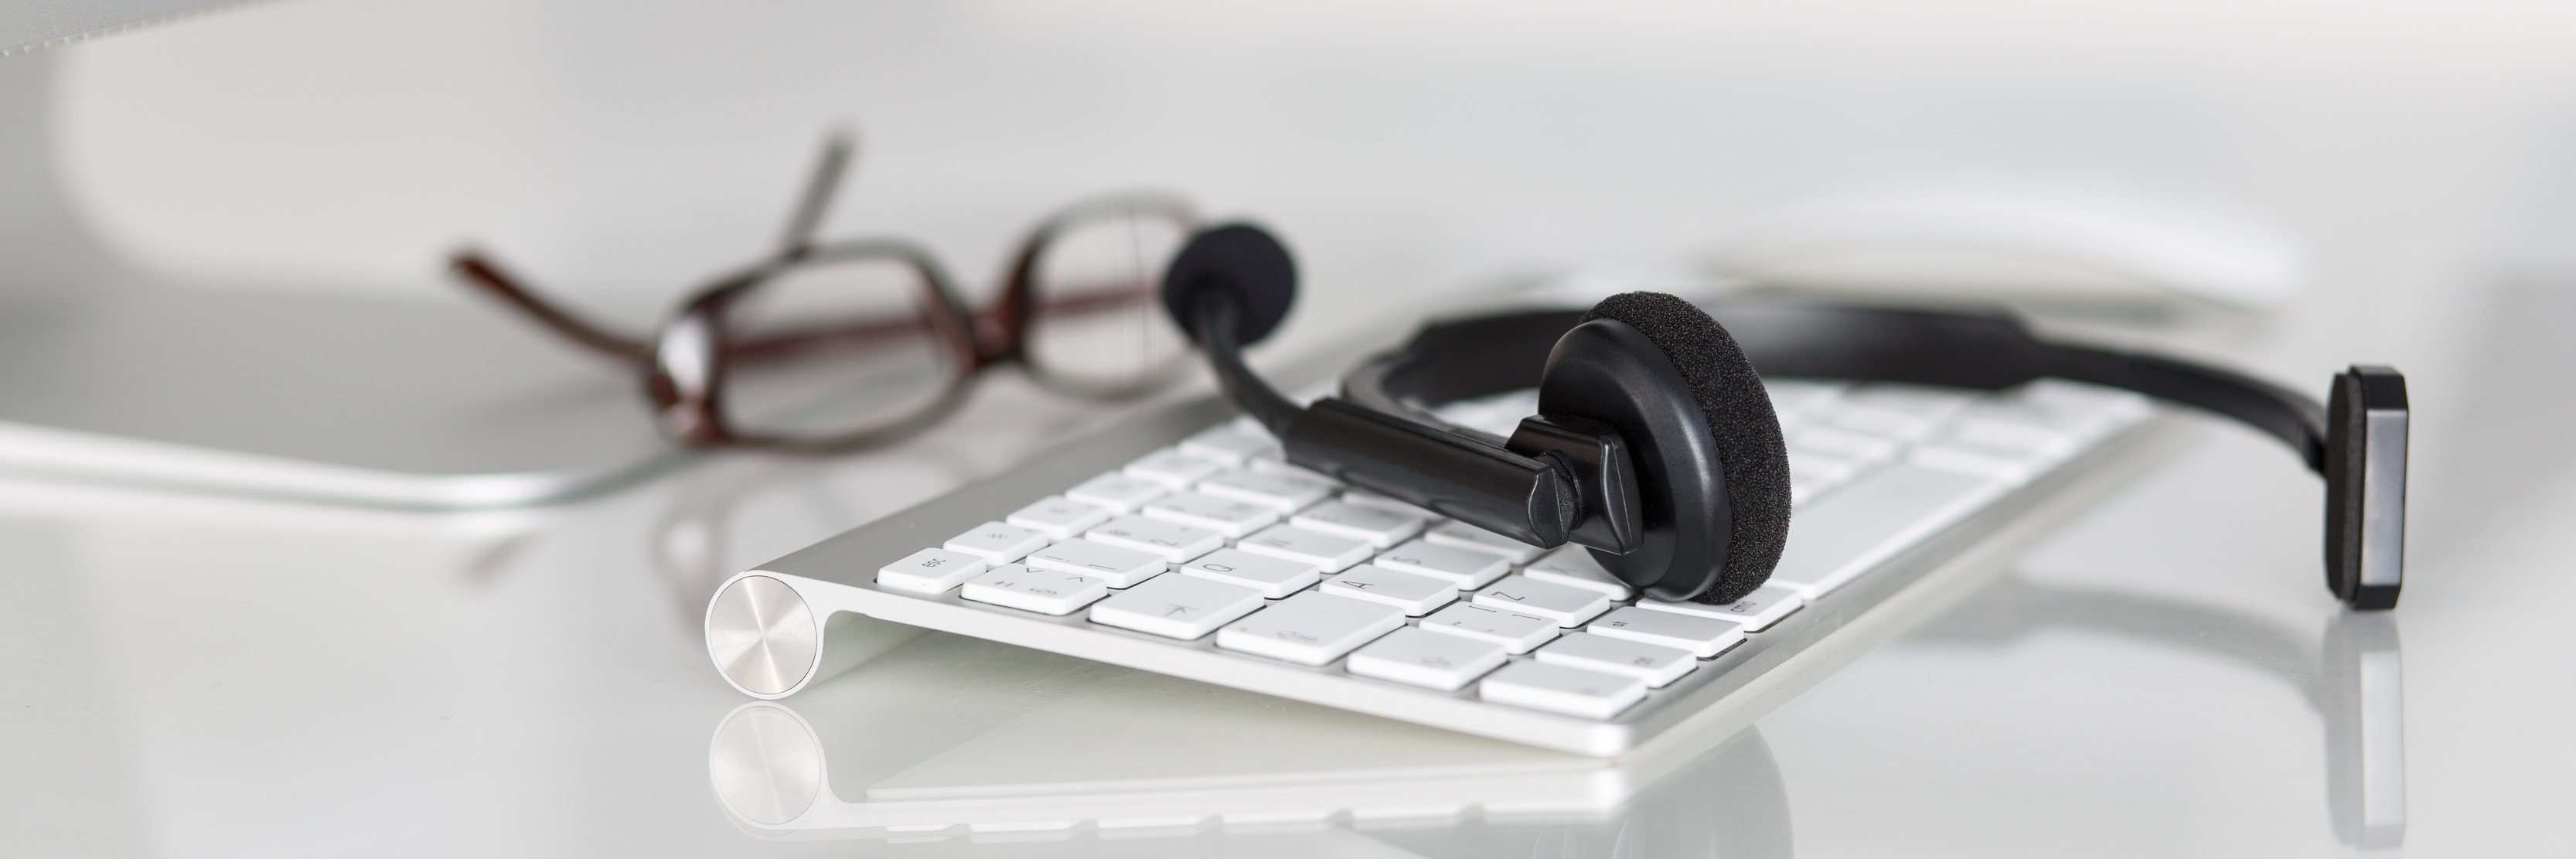 Call center service operator empty working place. Headset, glasses, keyboard at helpdesk employee workplace. Effective and efficient business information, help and support concept. Letterbox view